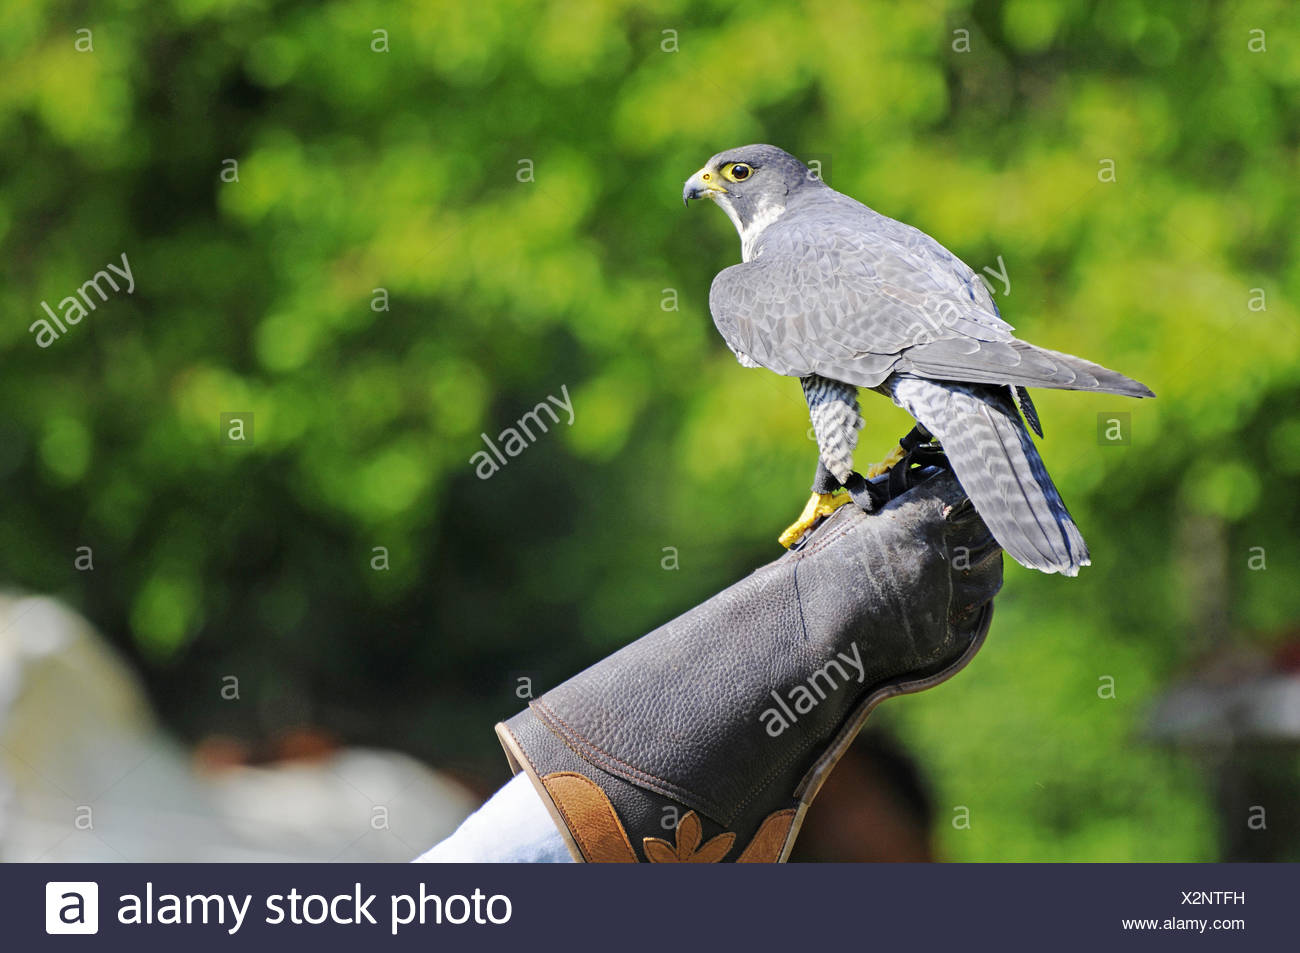 Peregrine Falcon on falconers hand, Germany - Stock Image